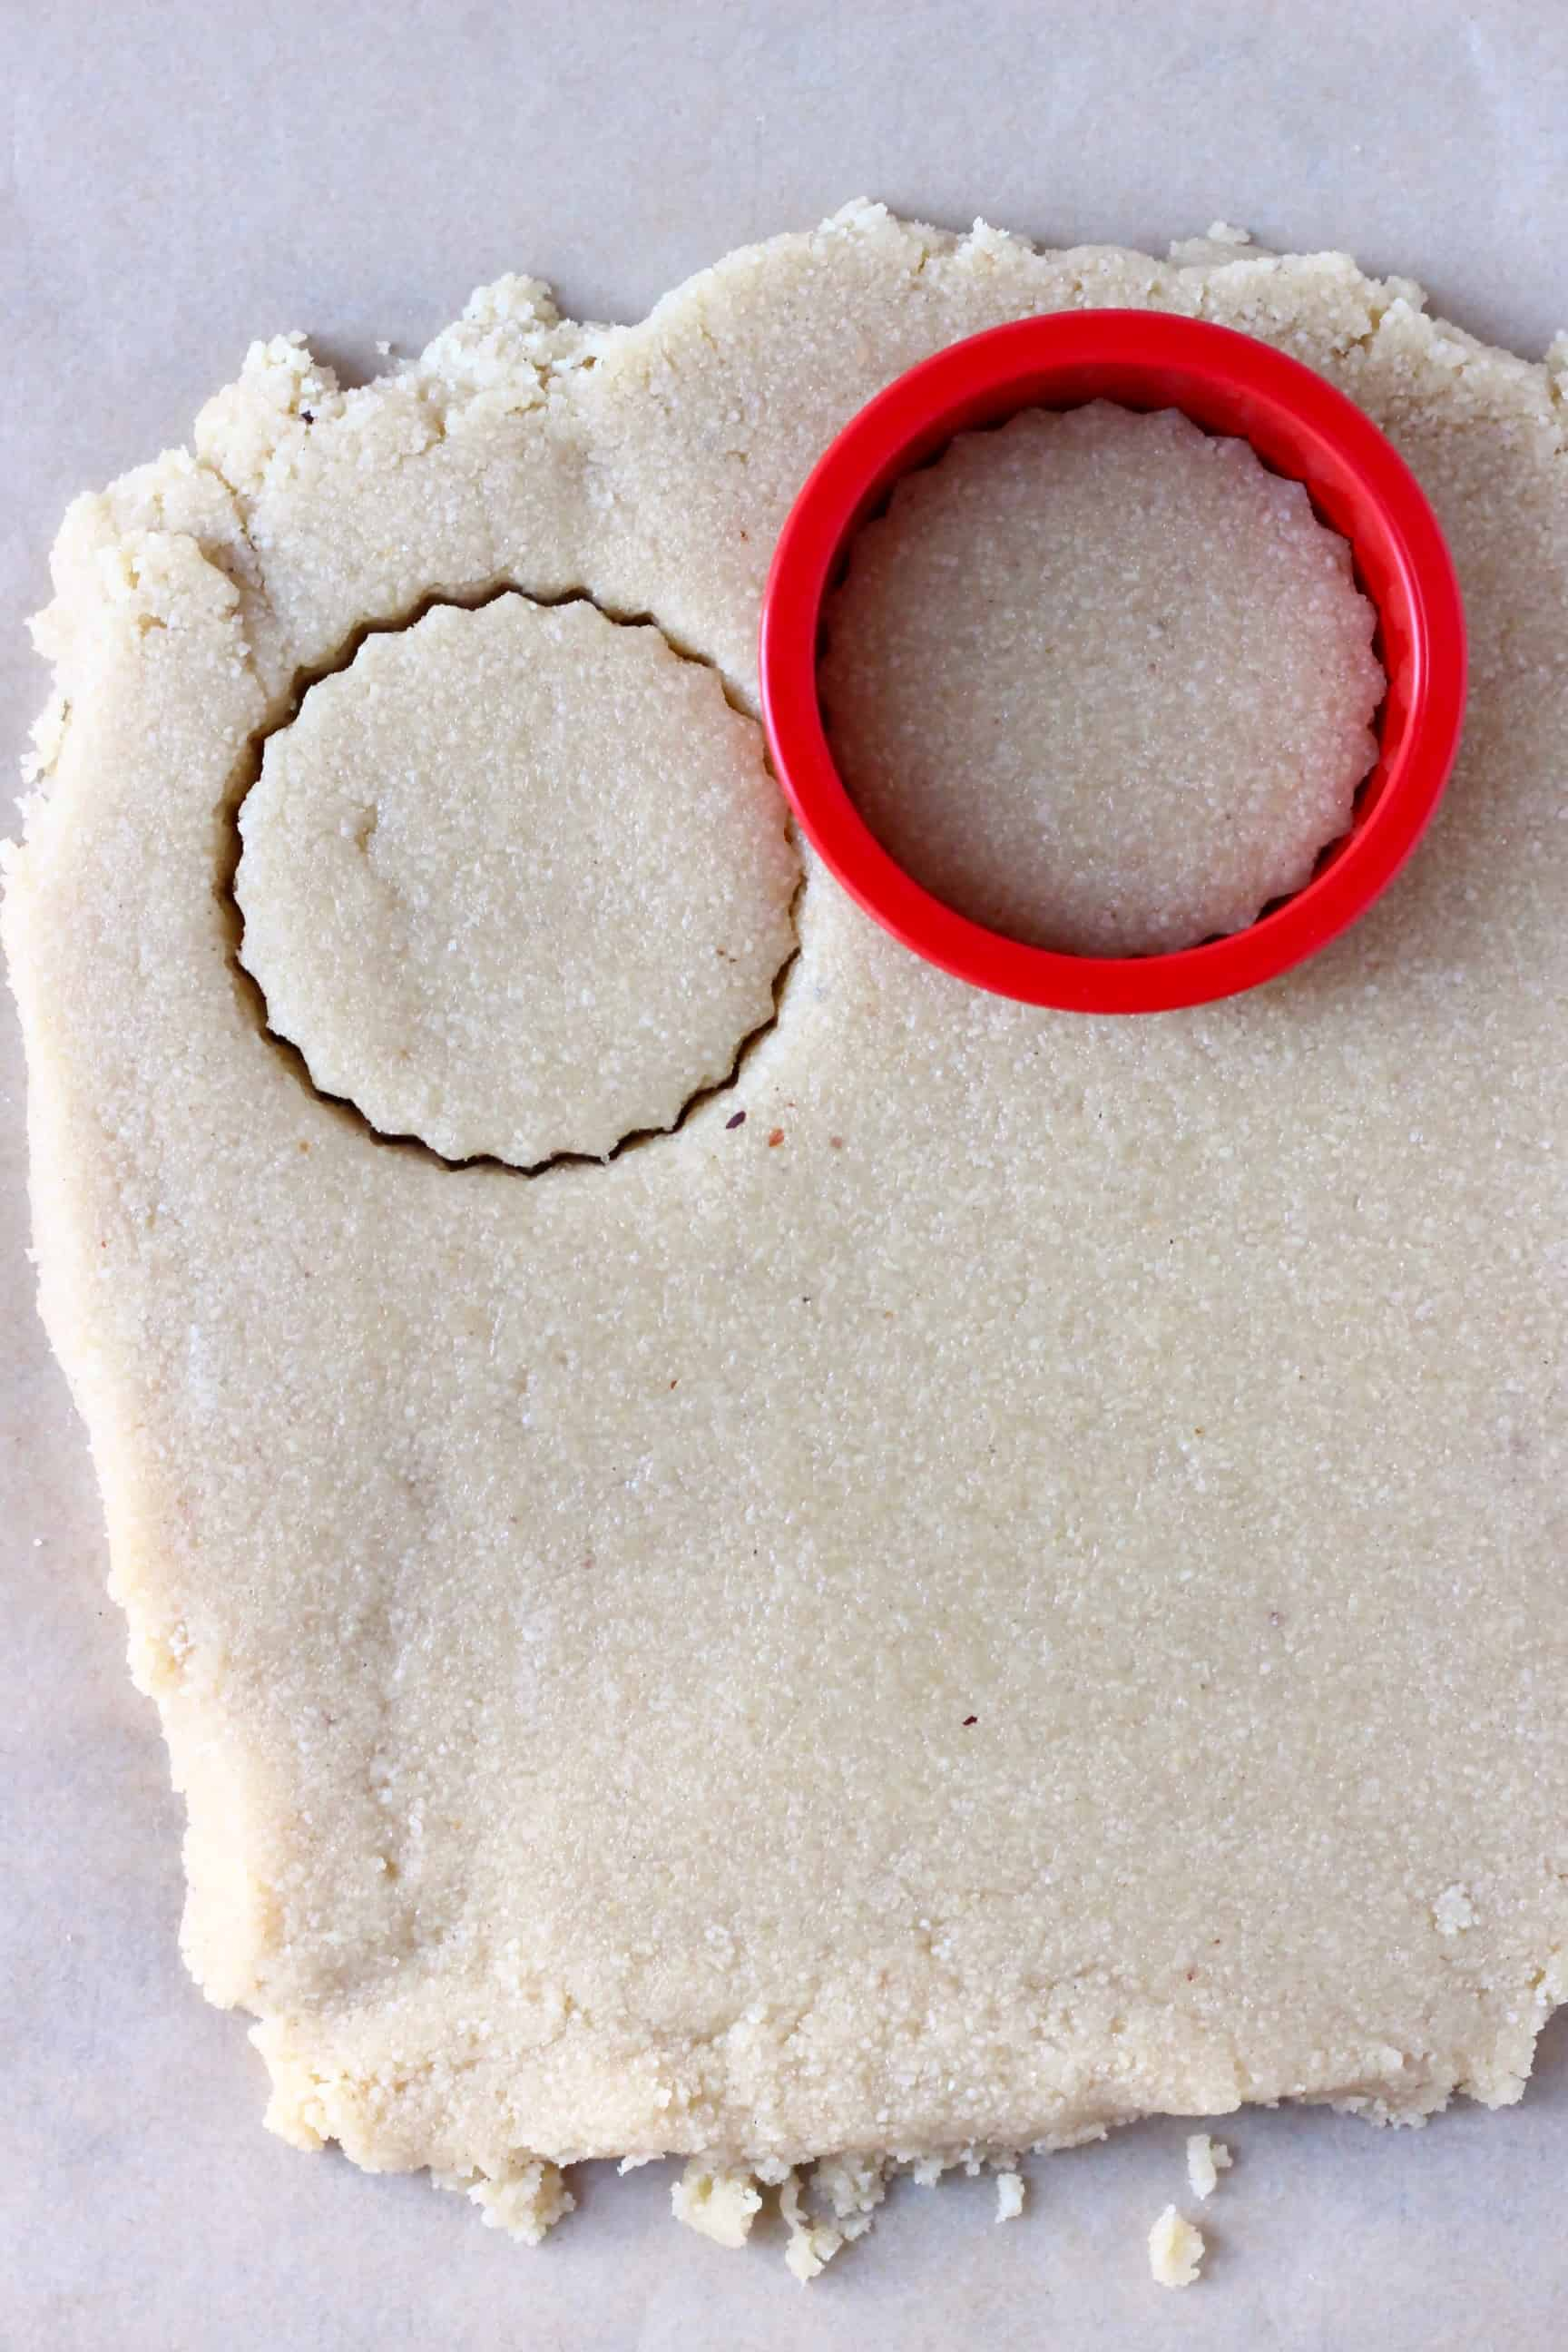 A square of raw vegan shortbread cookie dough rolled out on baking paper with a circular cookie cutter cutting out a circle of dough